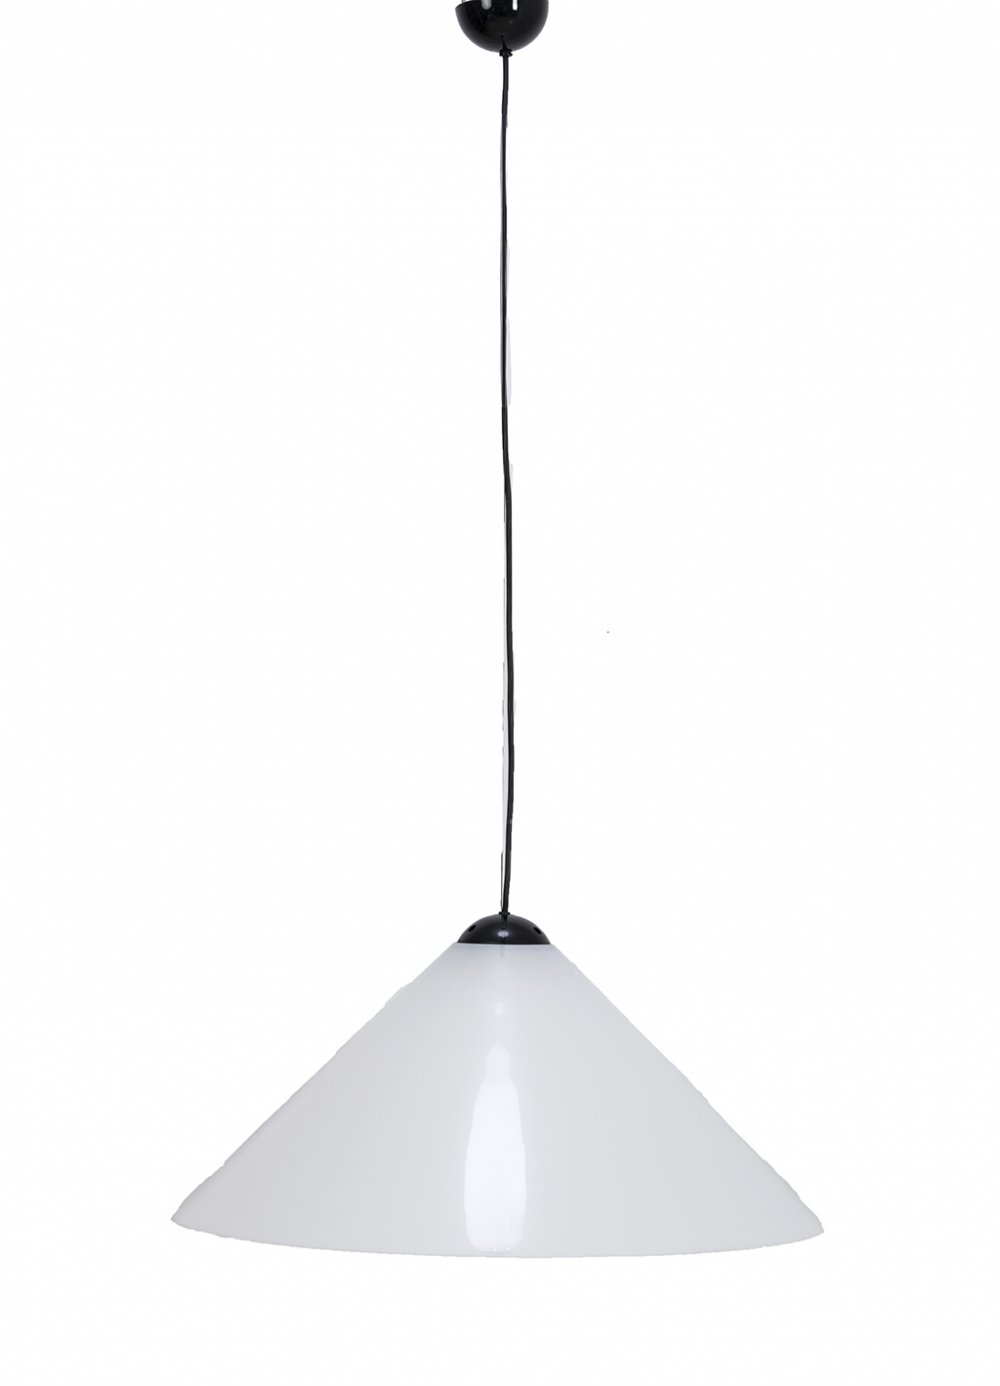 Snow hanging lamp by Vico Magistretti for Oluce, 1970s